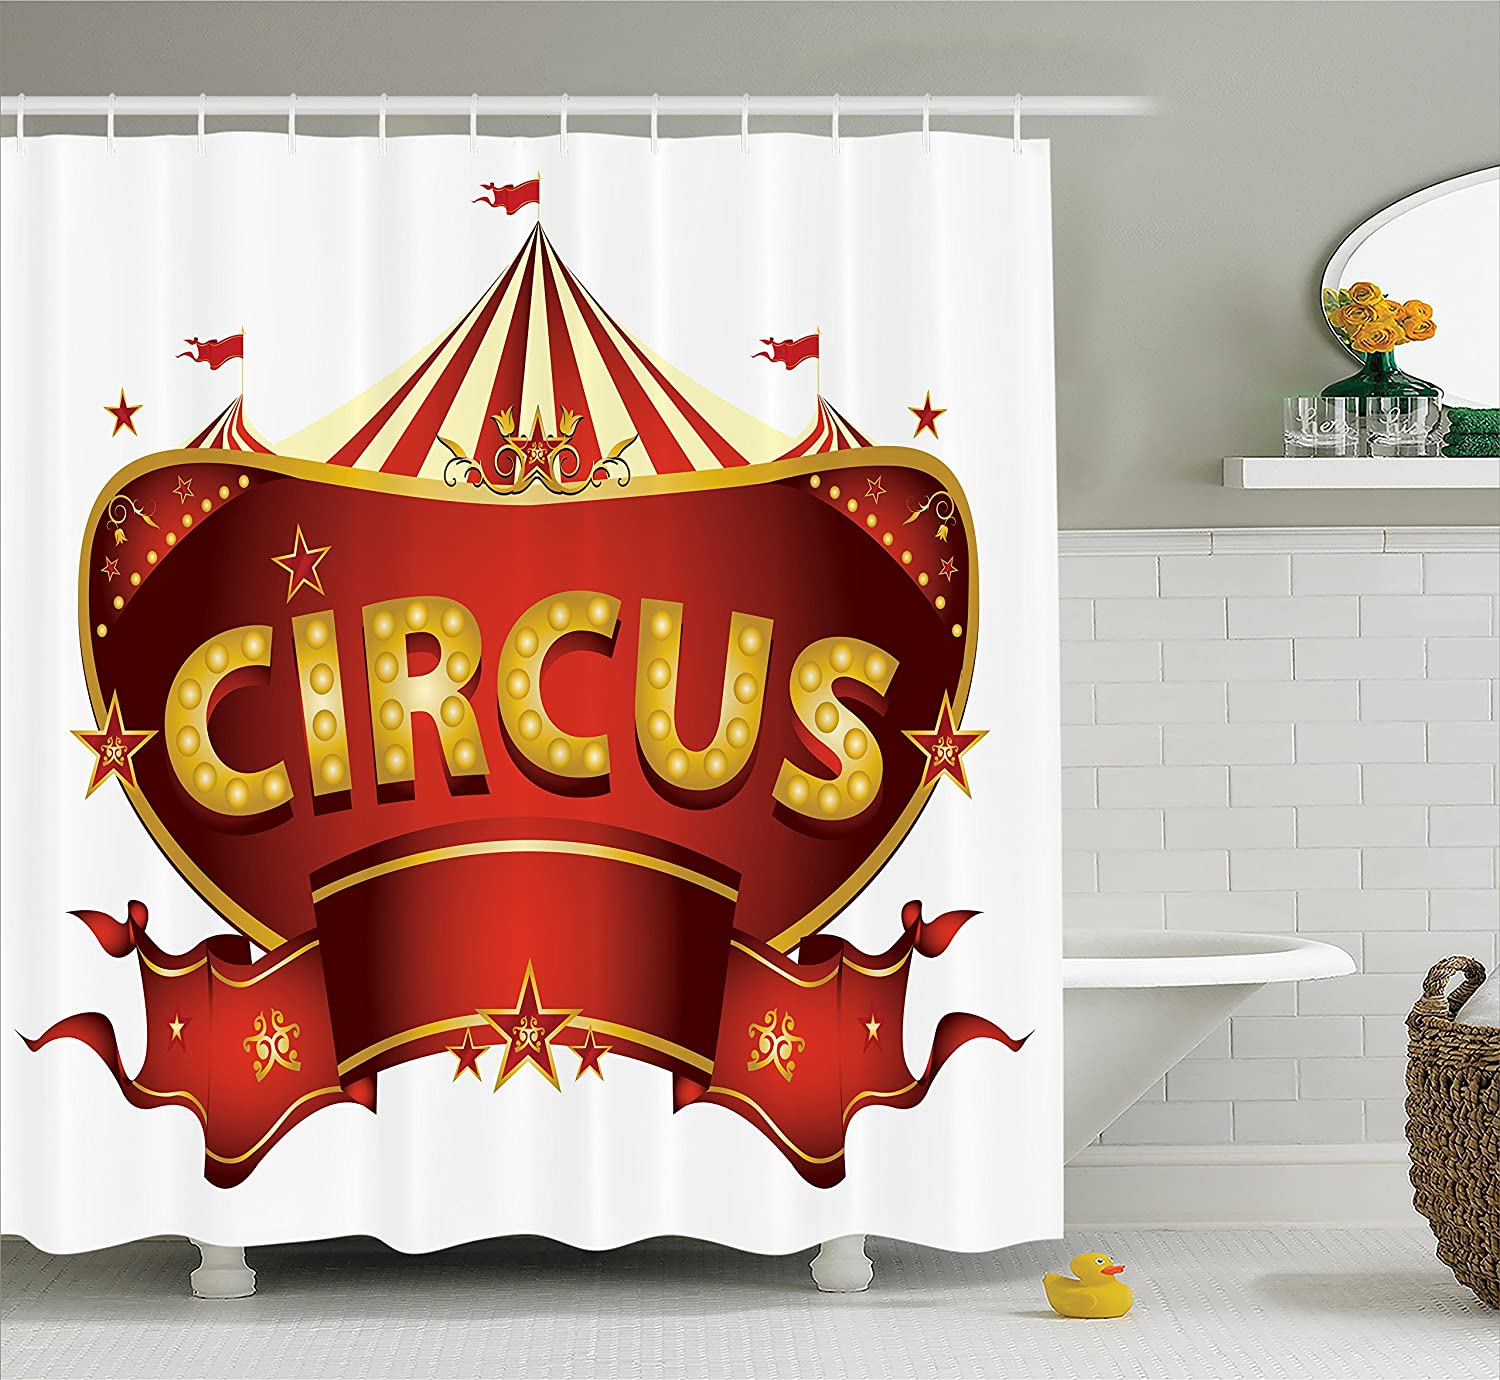 Ambesonne Circus Shower Curtain A Sign Baroque Style Big Top Enjoyment Theme Marquee Nightlife Retro Fabric Bathroom Decor Set With Hooks